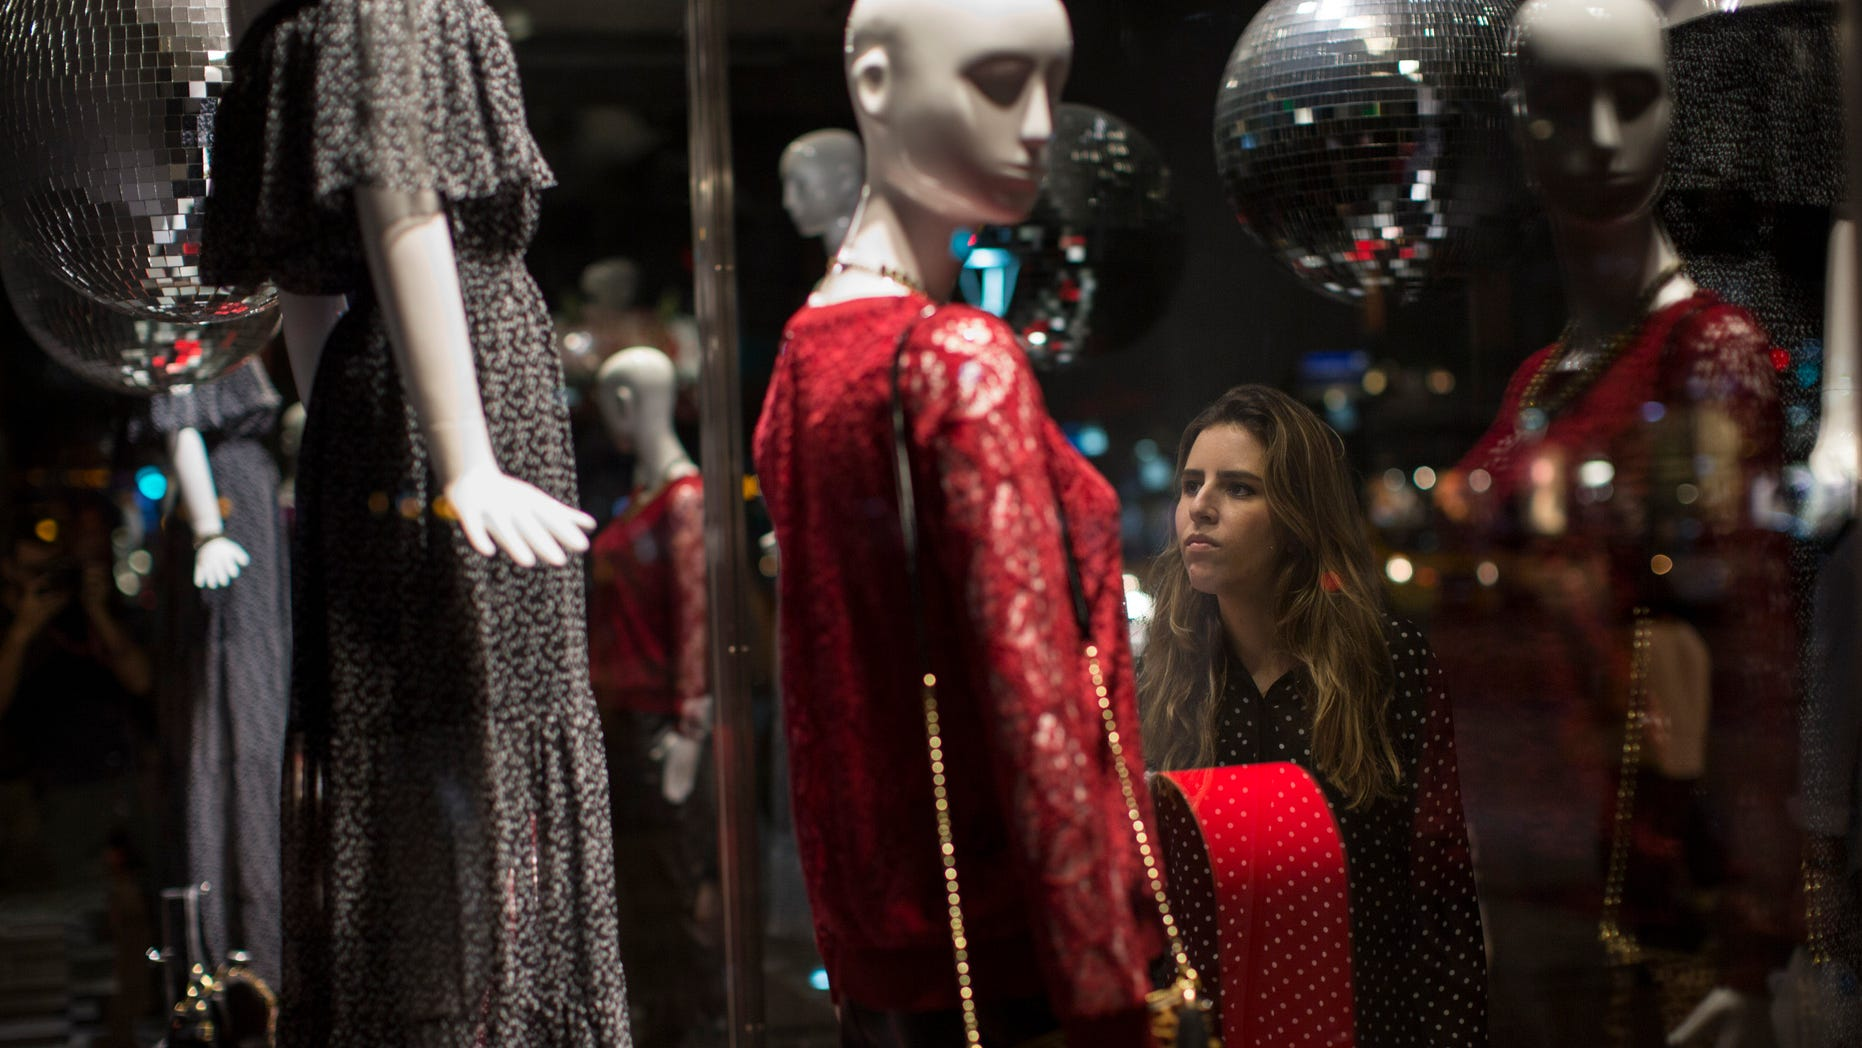 In this Friday, June 12, 2015 photo, a woman is seen through the window of a store as she looks at dresses for sale in Rio de Janeiro, Brazil. Brazilâs top credit information bureaus estimate that as of April, more than 55 million Brazilians were behind on paying off credit cards or loans. Thatâs 37 percent of the adult population in a country of about 200 million people, and the numbers are rising.  (AP Photo/Felipe Dana)